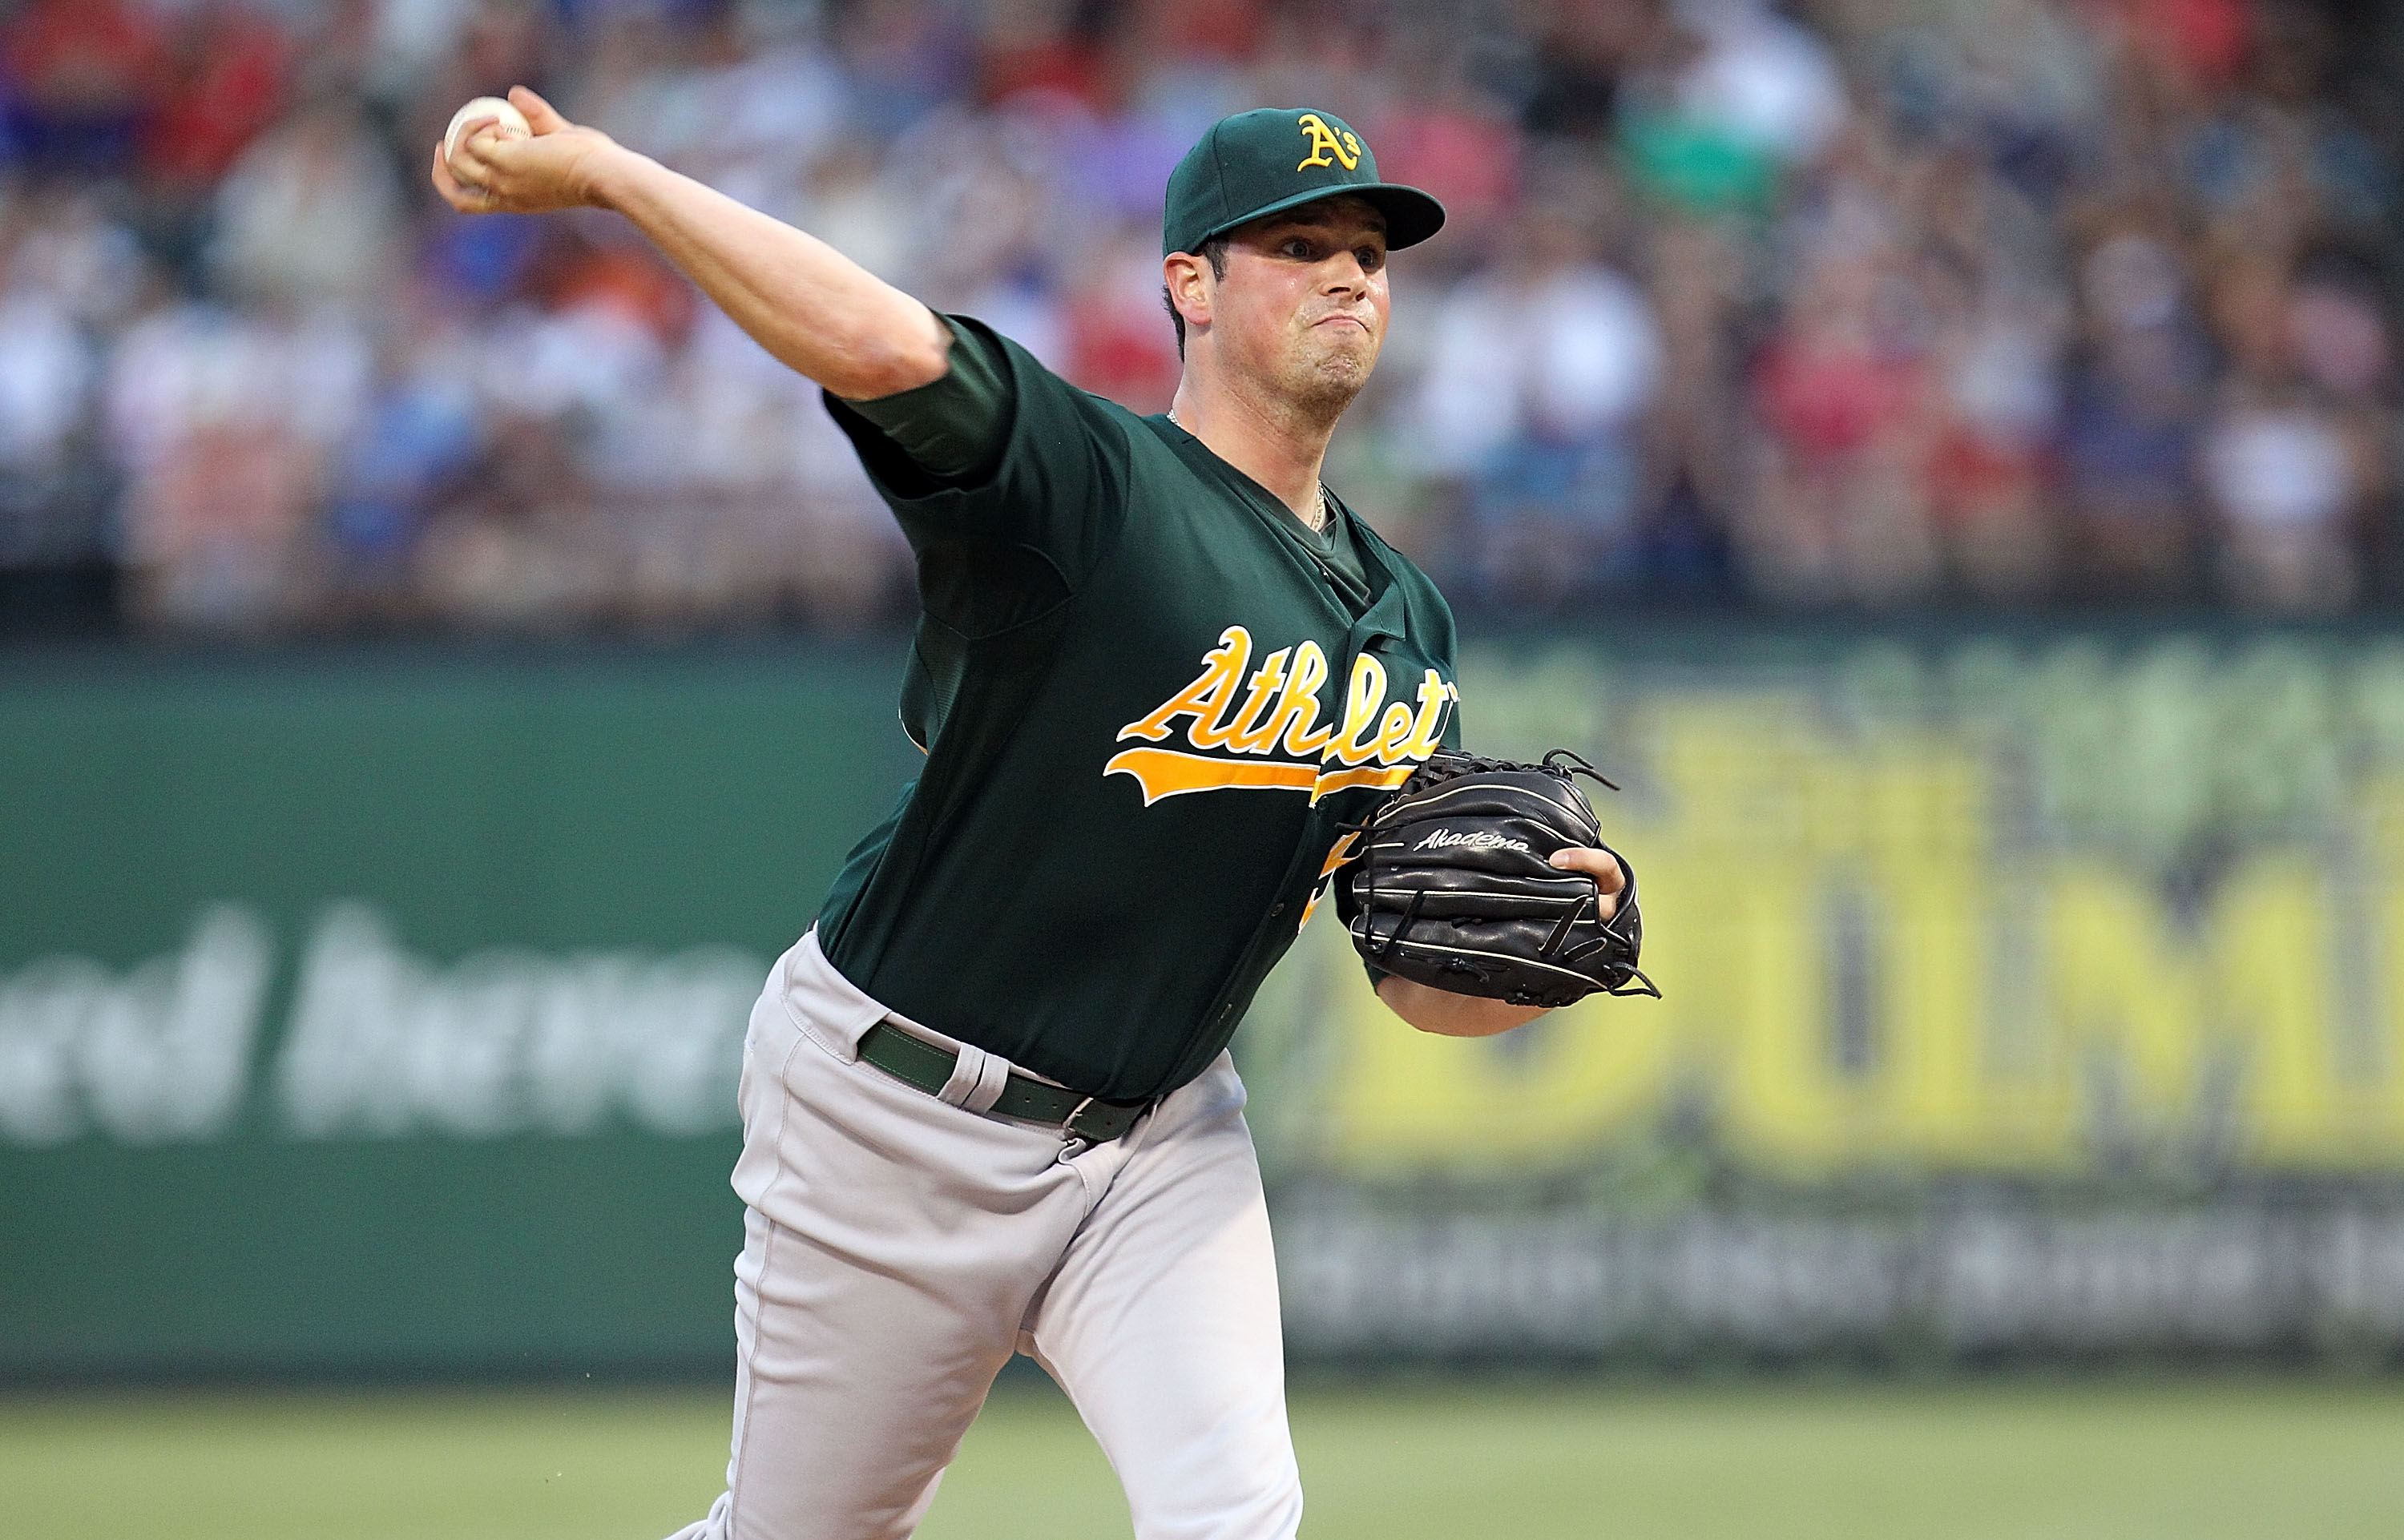 ARLINGTON, TX - JULY 29:  Vin Mazzaro #54 of the Oakland Athletics throws against the Texas Rangers on July 29, 2010 at Rangers Ballpark in Arlington, Texas.  (Photo by Ronald Martinez/Getty Images)